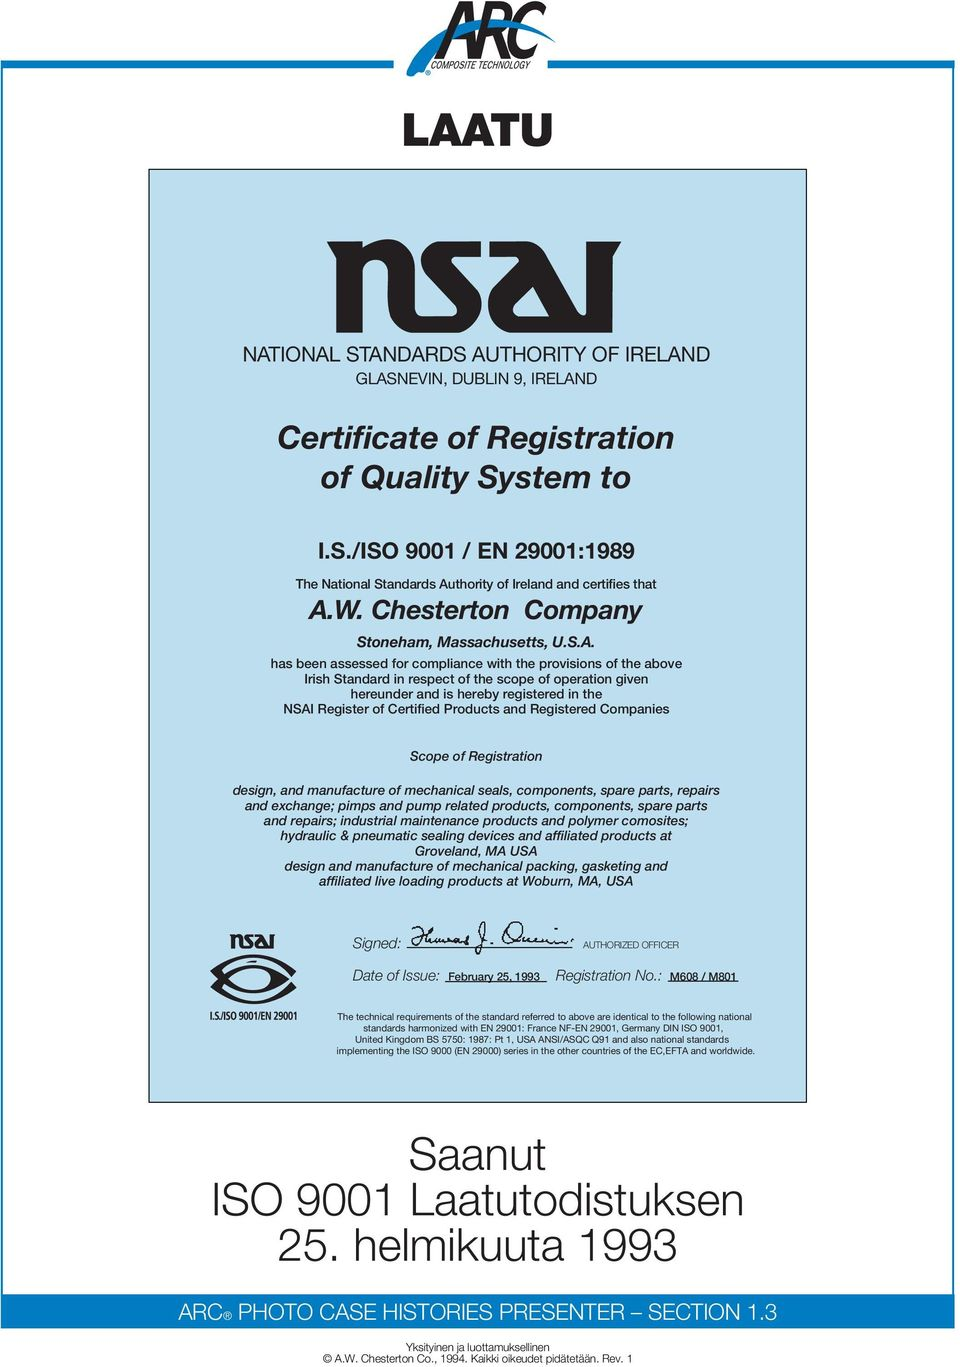 has been assessed for compliance with the provisions of the above Irish Standard in respect of the scope of operation given hereunder and is hereby registered in the NSAI Register of Certified